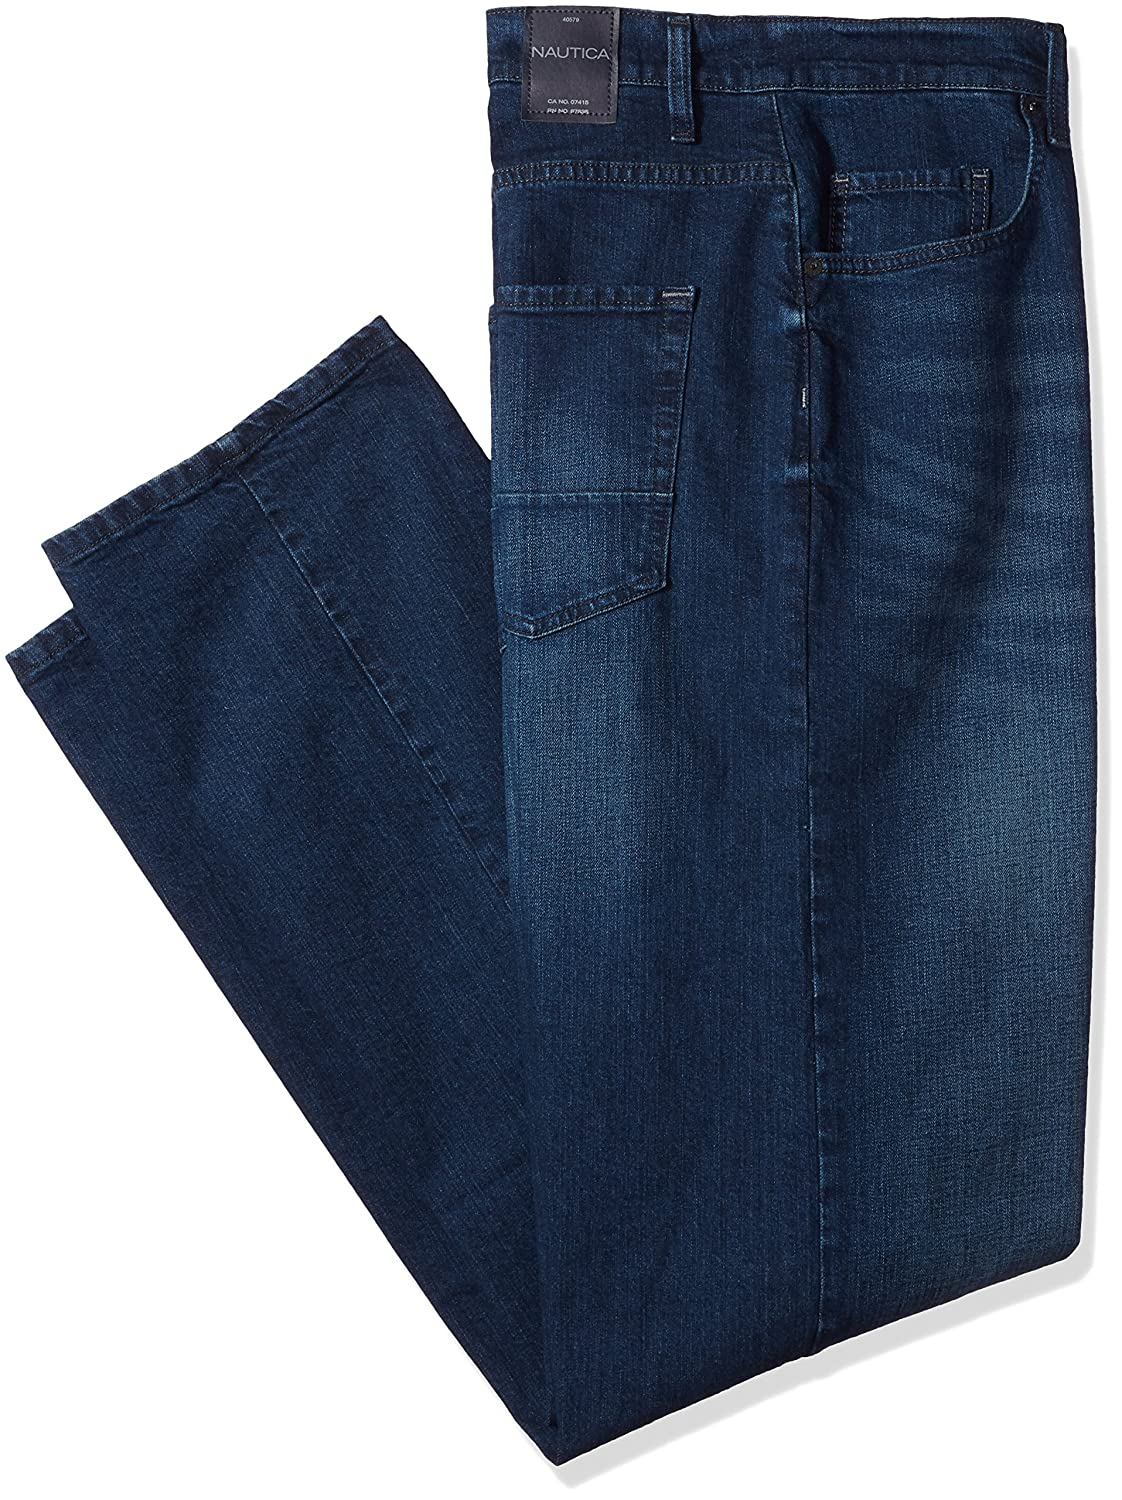 Nautica Mens Big and Tall 5 Pocket Relaxed Fit Stretch Jean